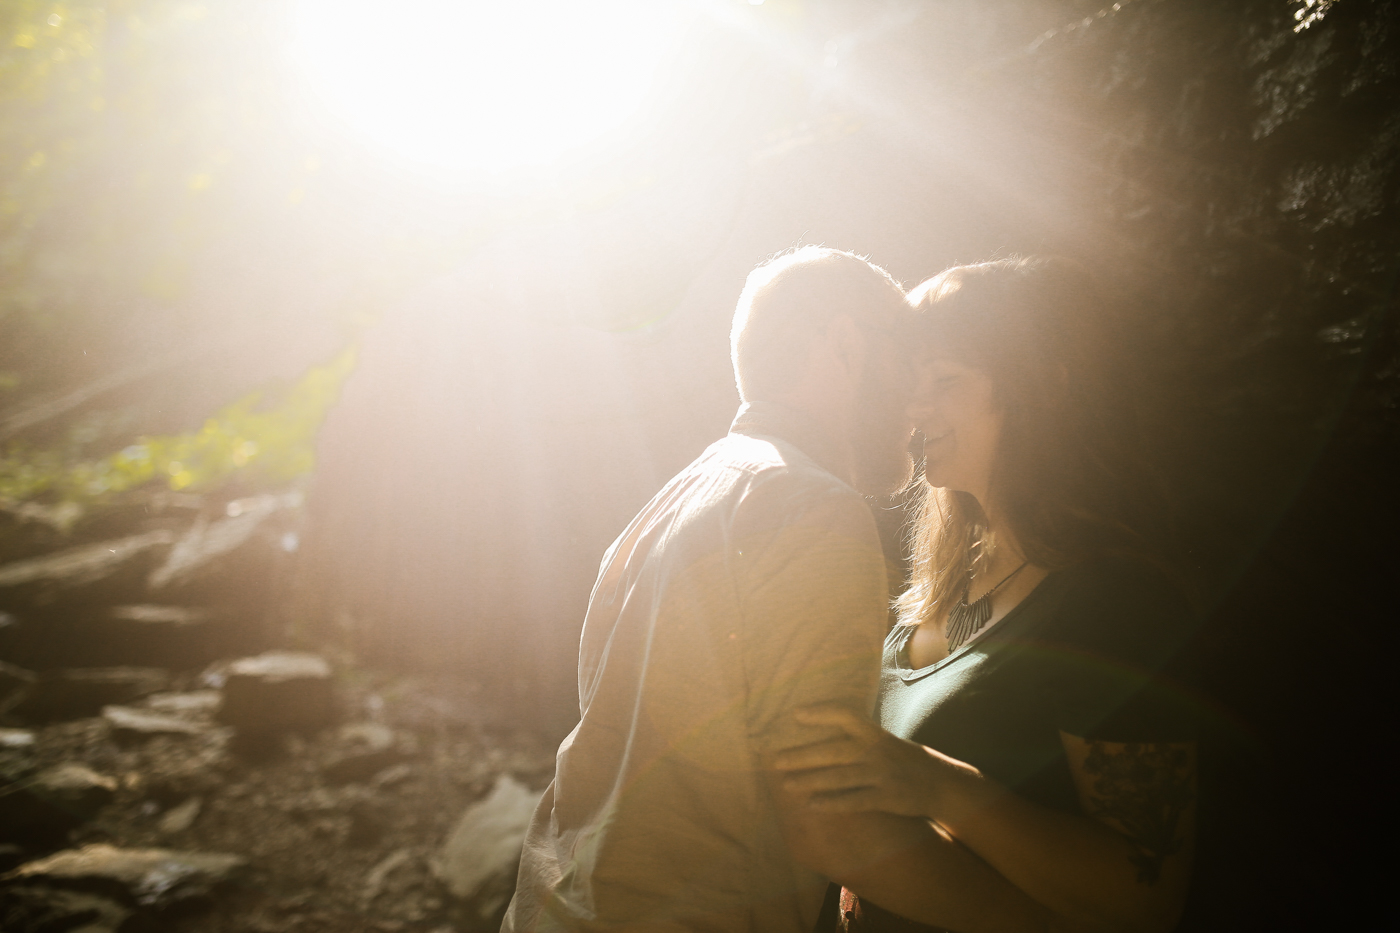 Eastern-Kentucky-Outdoors-Cave-Engagement-Photography-19.jpg